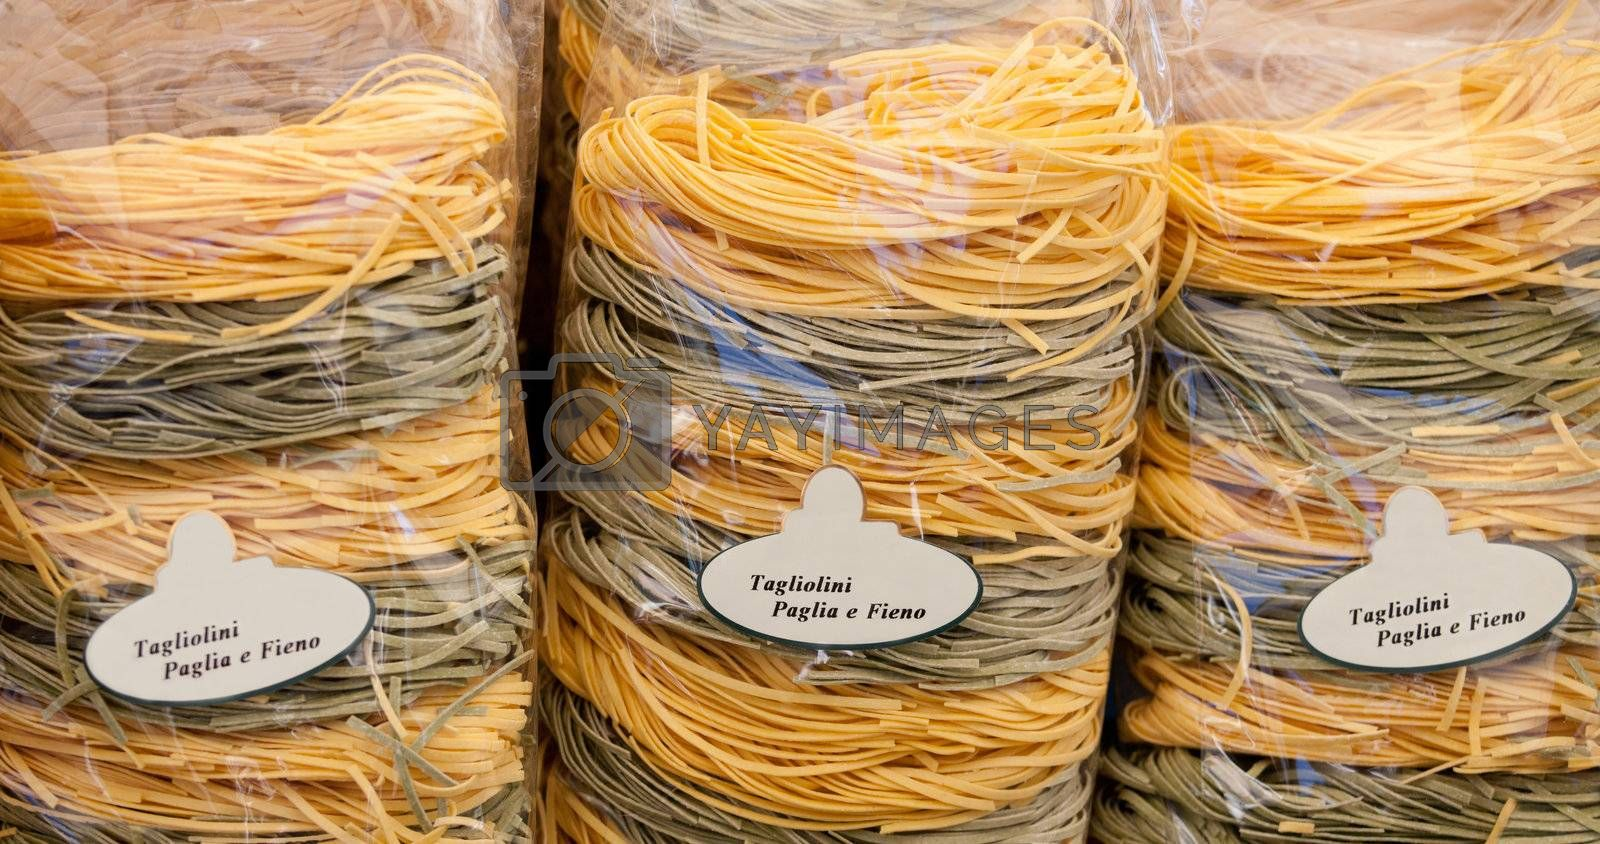 Packed italian egg yellow and spinach pasta tagliatelle at store by SergeyAK